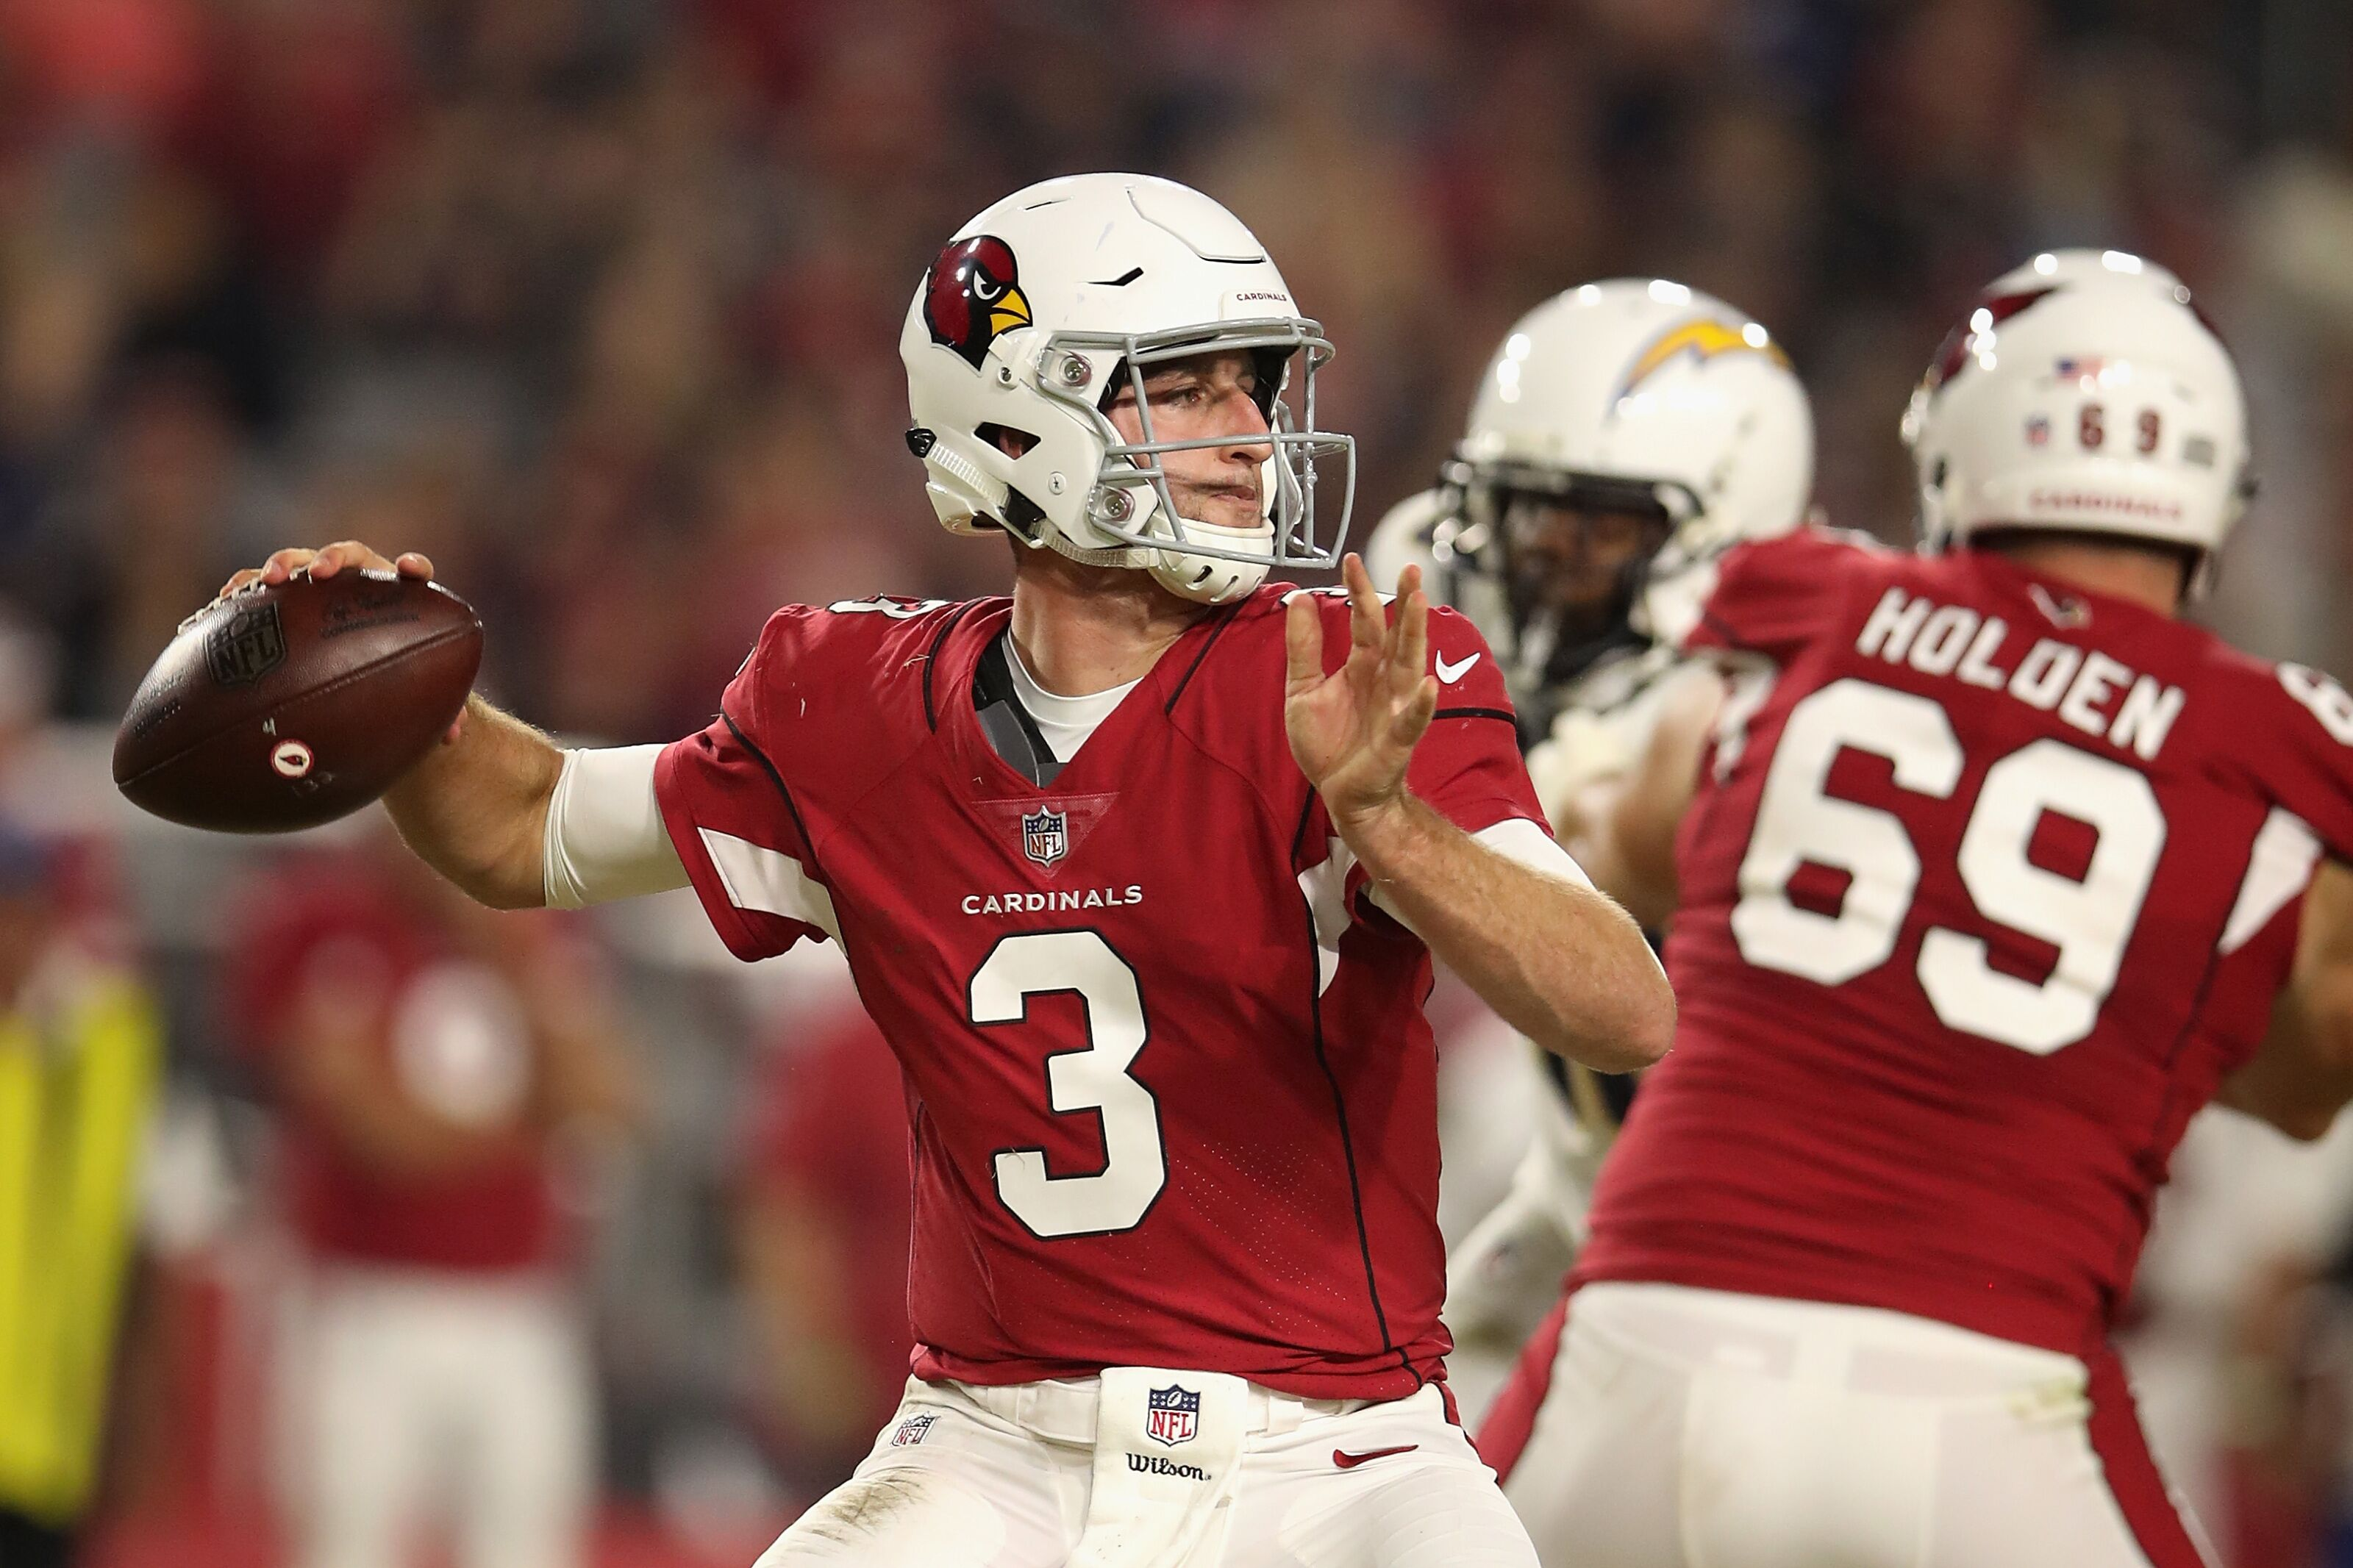 GLENDALE, AZ - AUGUST 11: Quarterback Josh Rosen #3 of the Arizona Cardinals throws a pass during the preseason NFL game against the Los Angeles Chargers at University of Phoenix Stadium on August 11, 2018 in Glendale, Arizona. (Photo by Christian Petersen/Getty Images)